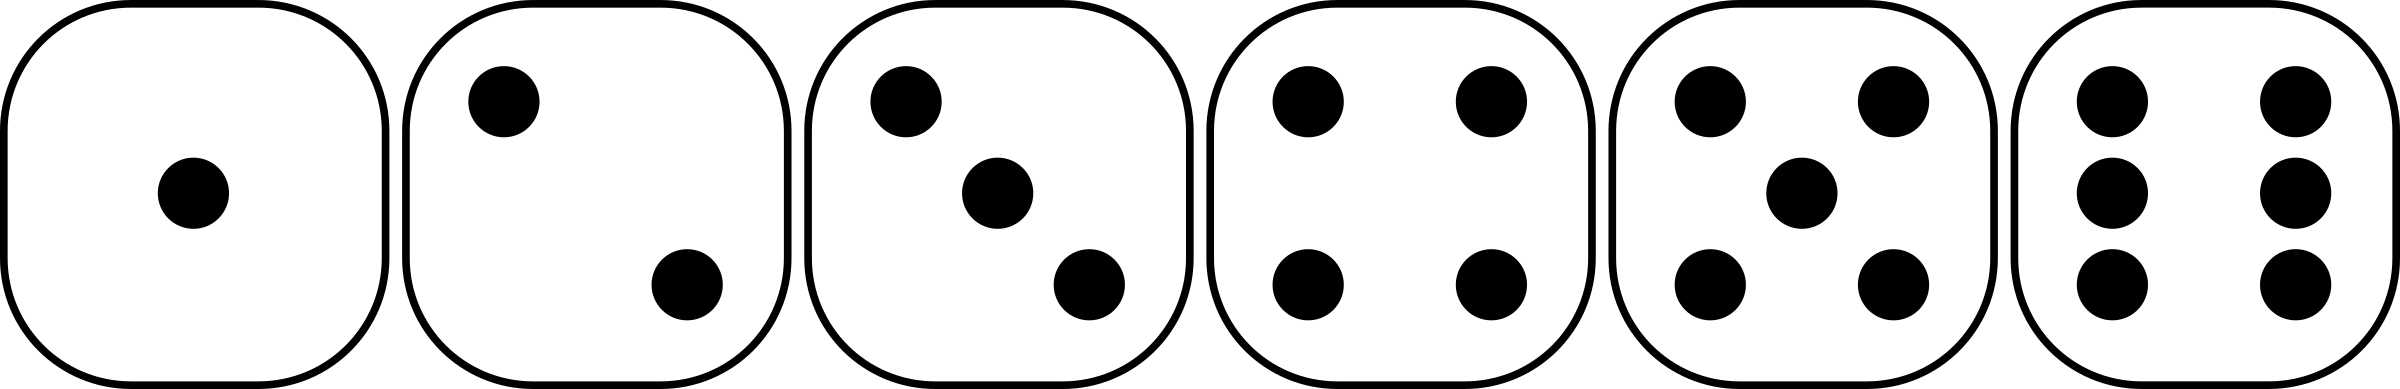 Dice clipart six sided Faces dice six faces sided